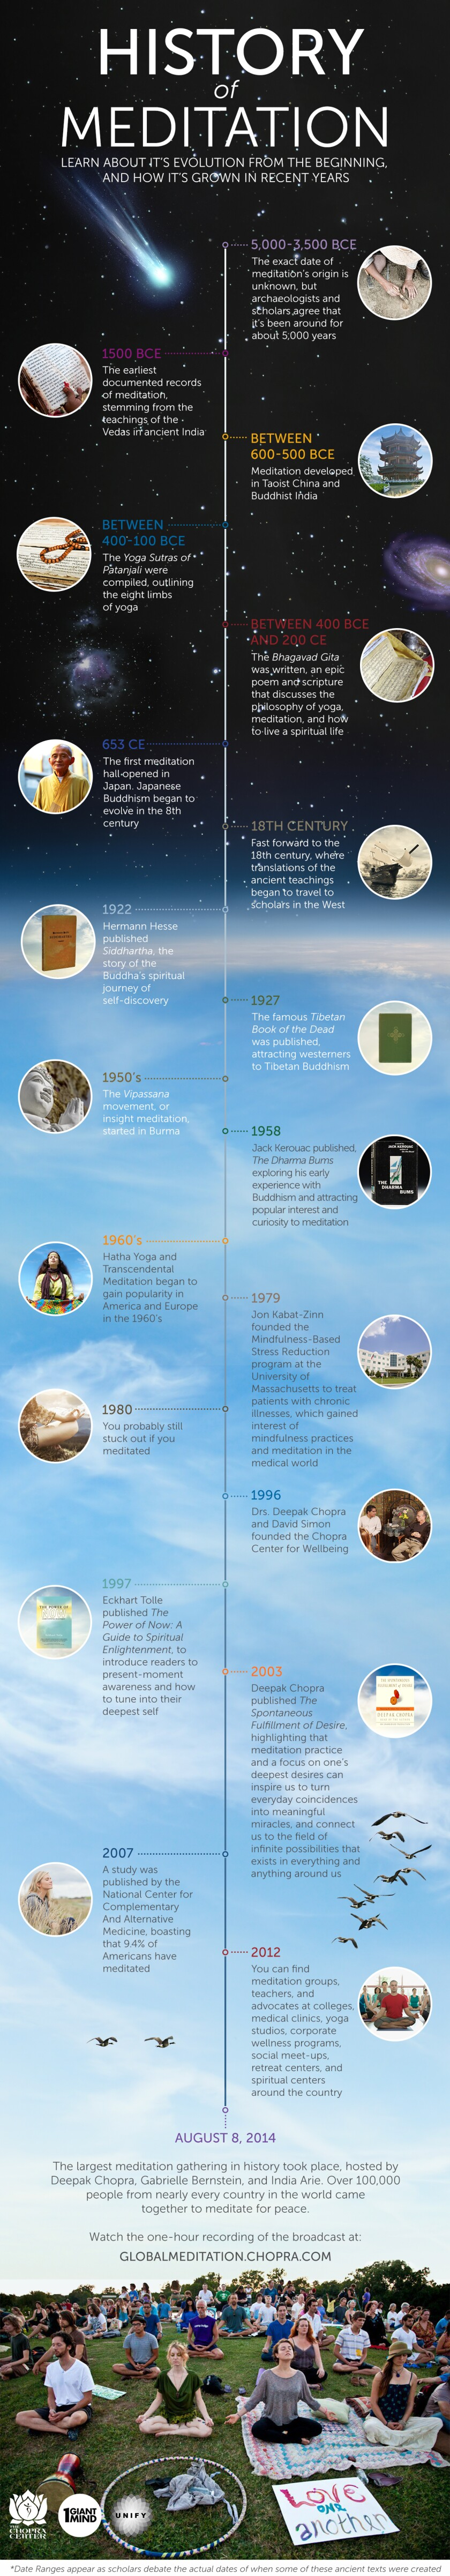 The history of meditation infographic